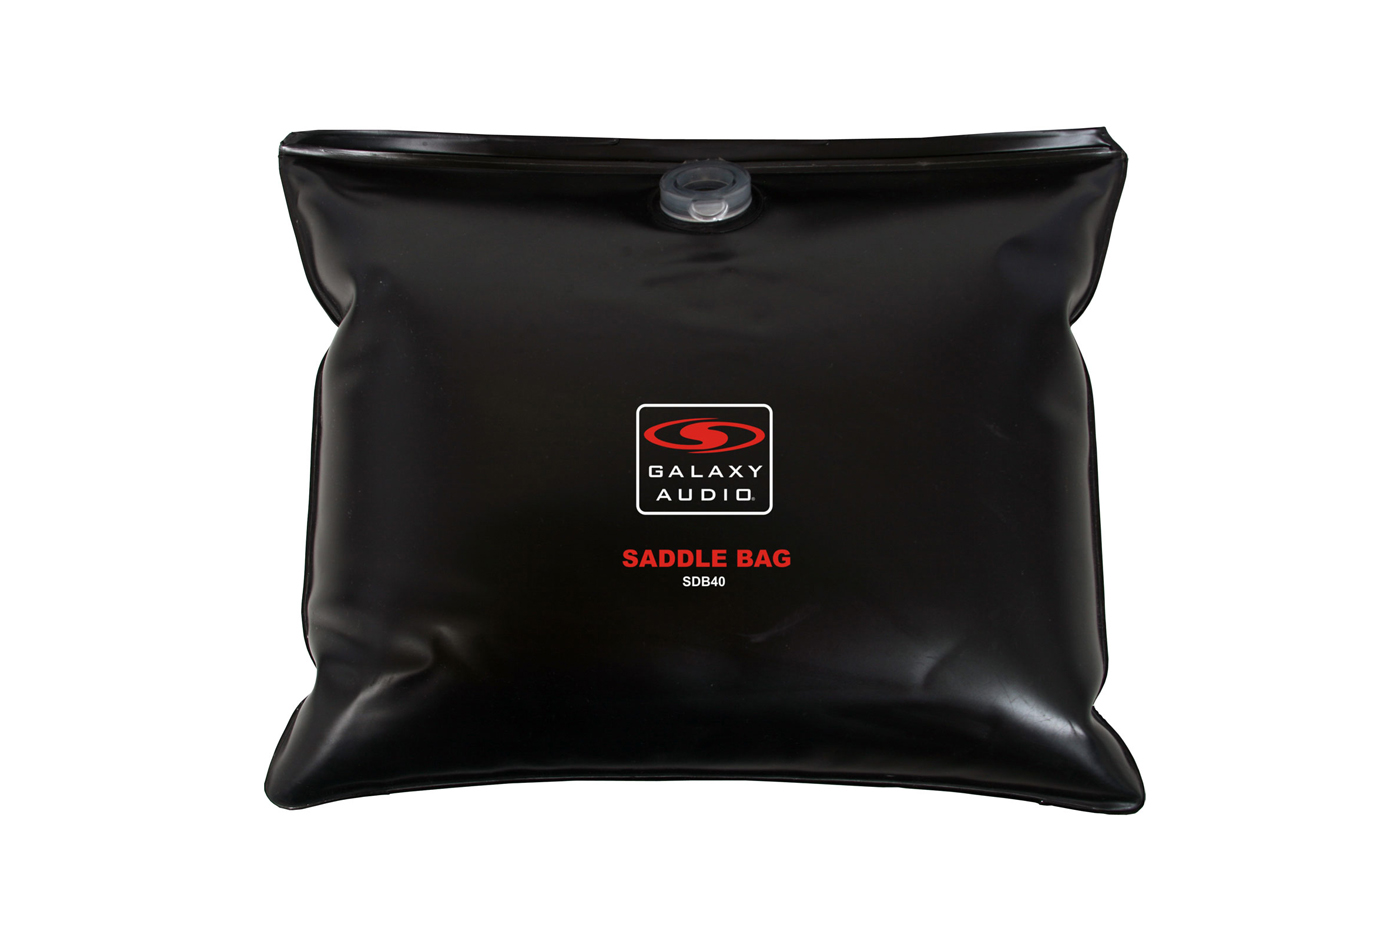 GALAXY AUDIO SADDLE BAG - SDB40